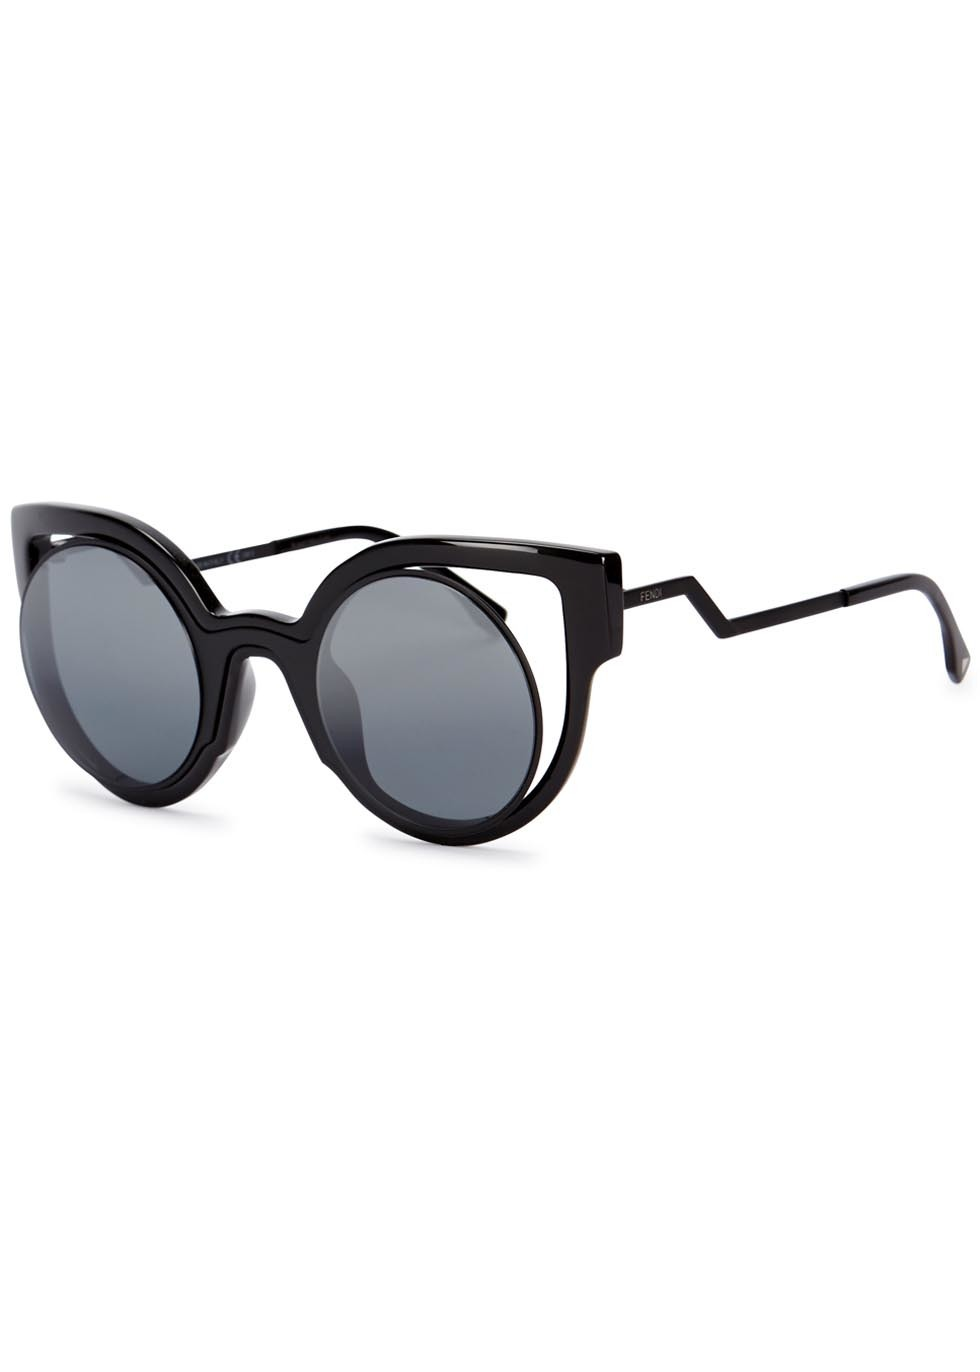 Black Cat Eye Sunglasses - predominant colour: black; occasions: casual, holiday; style: cateye; size: standard; material: plastic/rubber; pattern: plain; finish: plain; season: a/w 2015